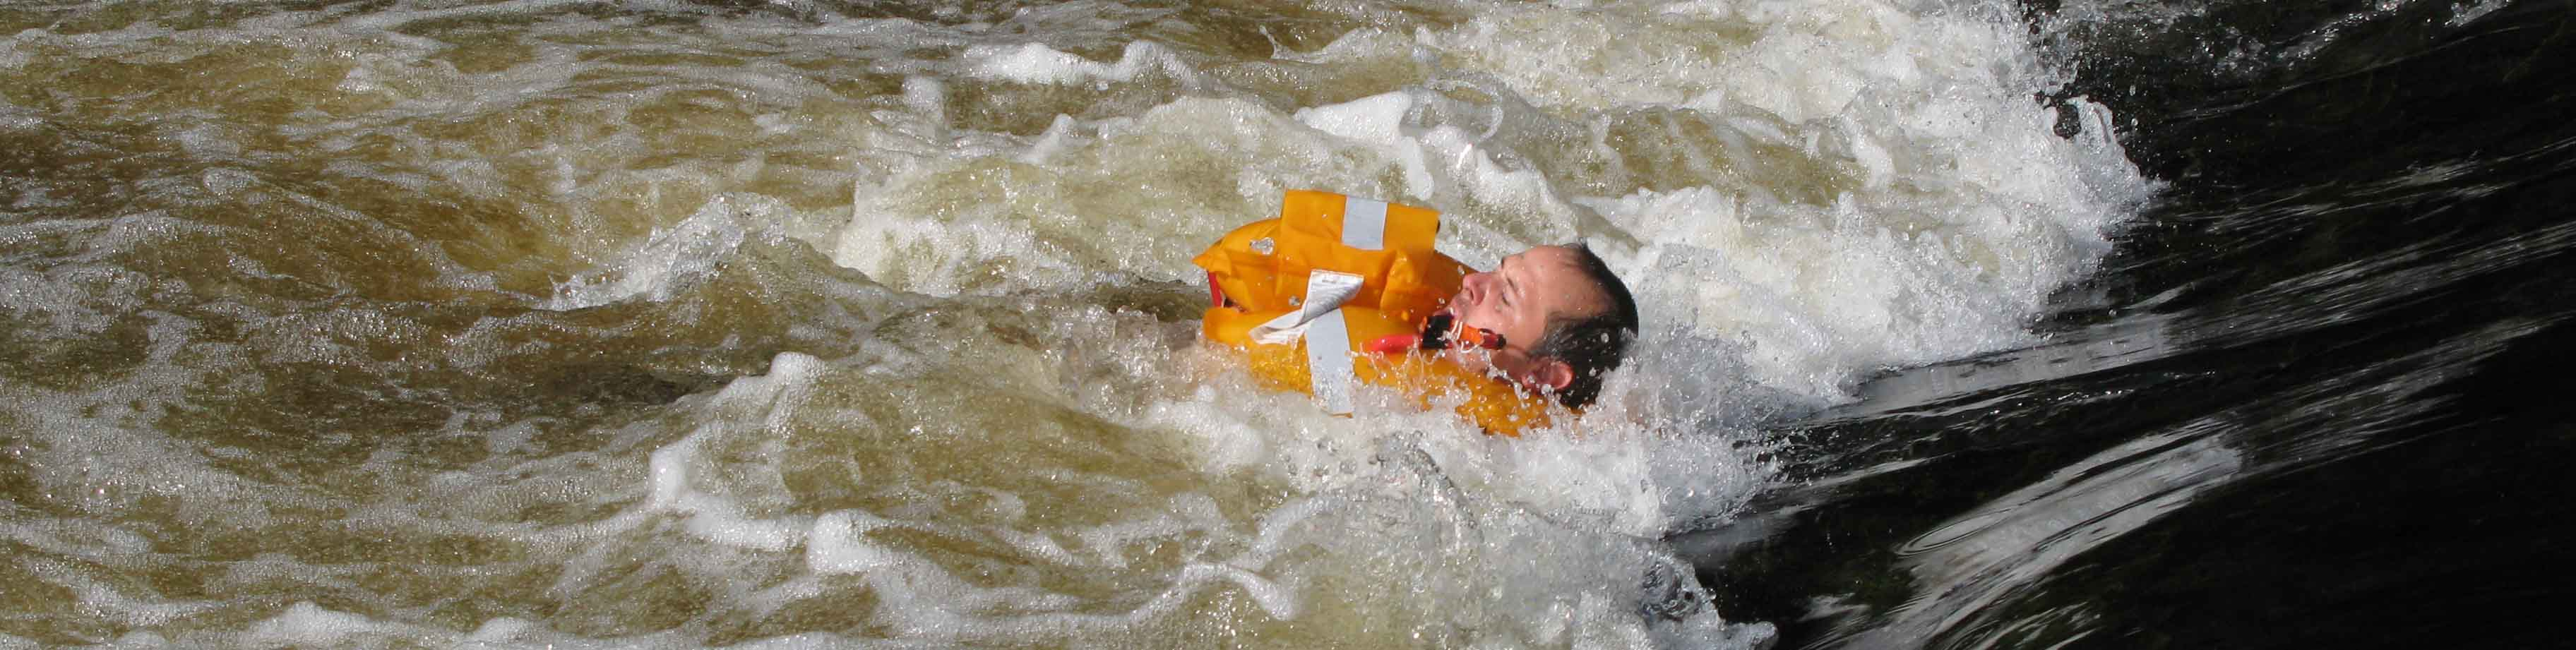 Swiftwater and Flood Rescue Technician